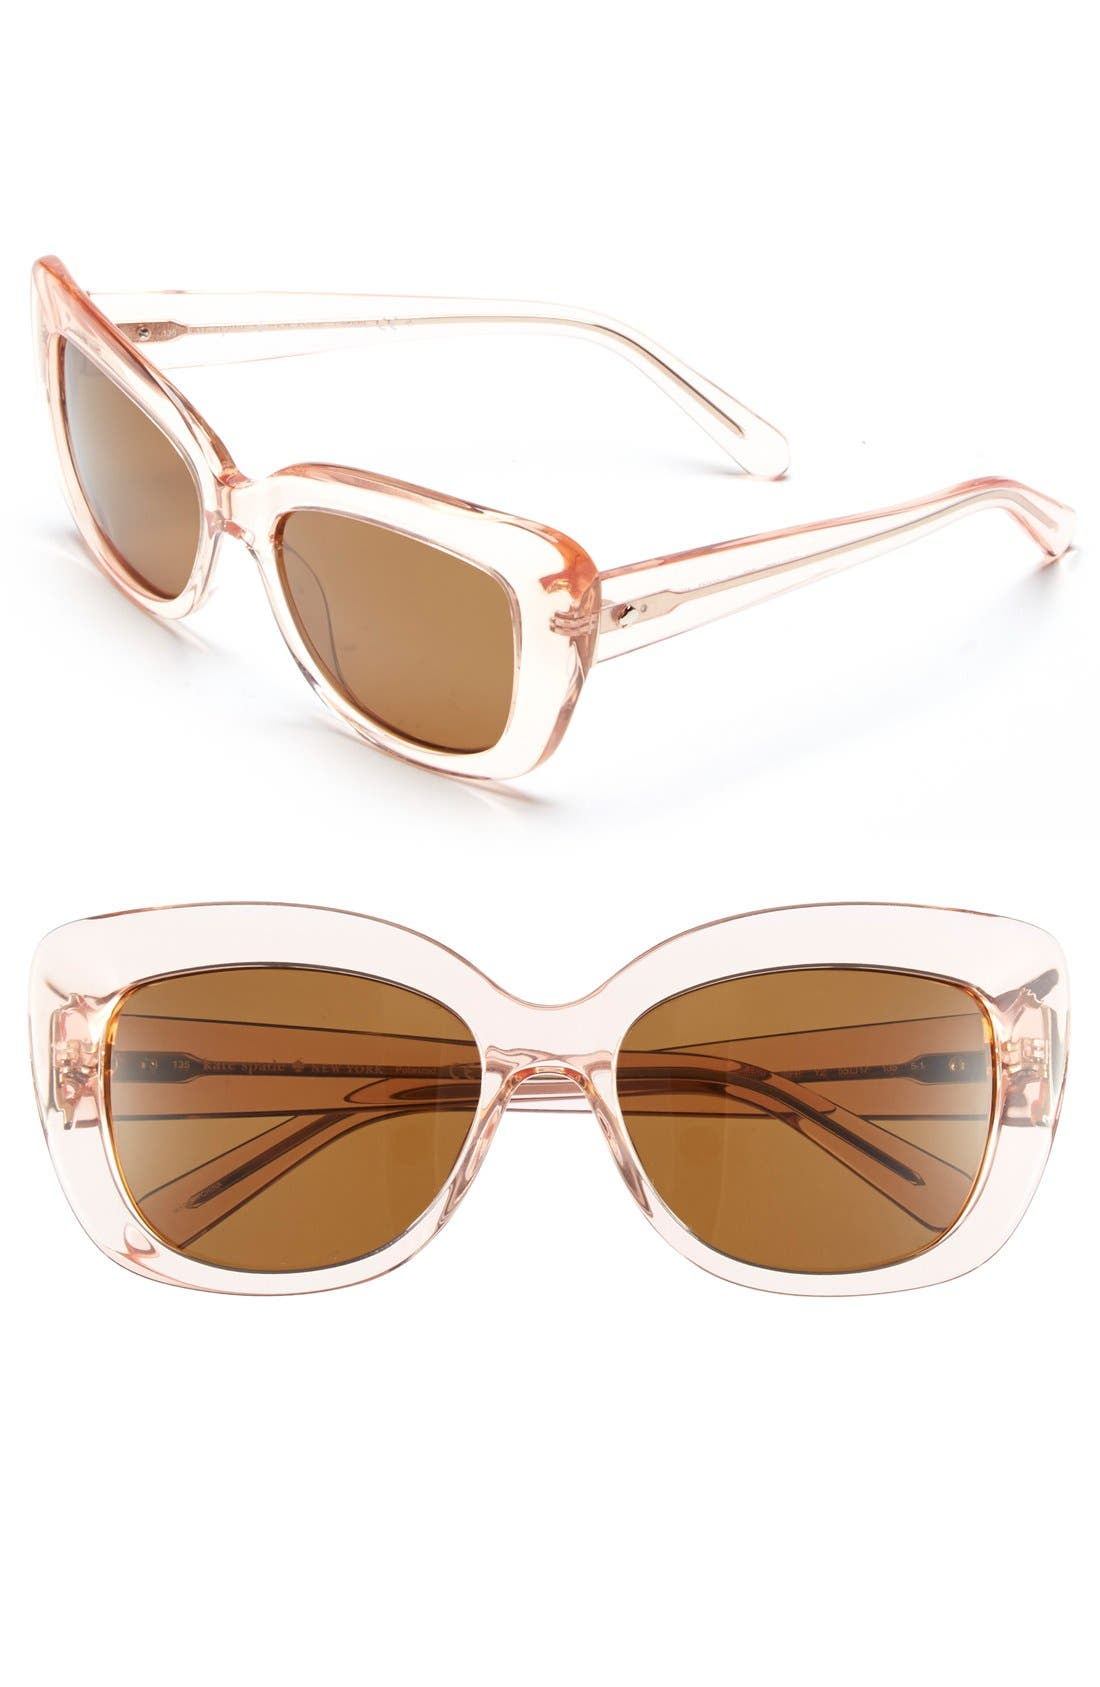 Alternate Image 1 Selected - kate spade new york 'ursula' 55mm polarized cat eye sunglasses (Nordstrom Exclusive)